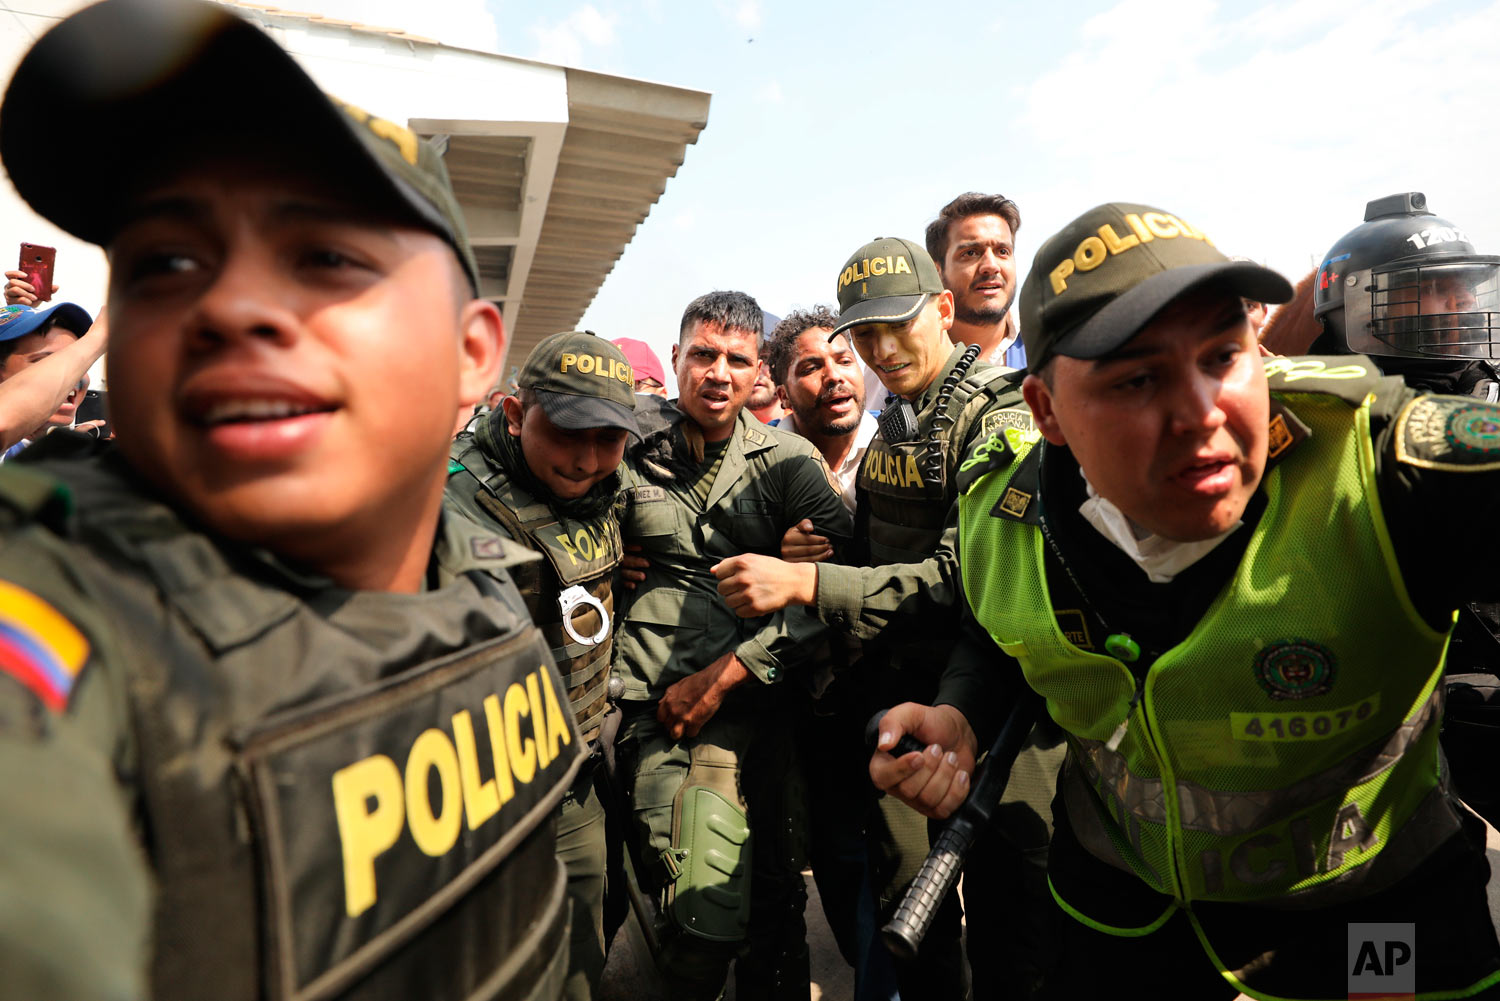 Colombian police escort a Venezuelan soldier who deserted his post at the Simon Bolivar International Bridge, where Venezuelans tried to deliver humanitarian aid despite objections from President Nicolas Maduro, in Cucuta, Colombia, Feb. 23, 2019. (AP Photo/Fernando Vergara)